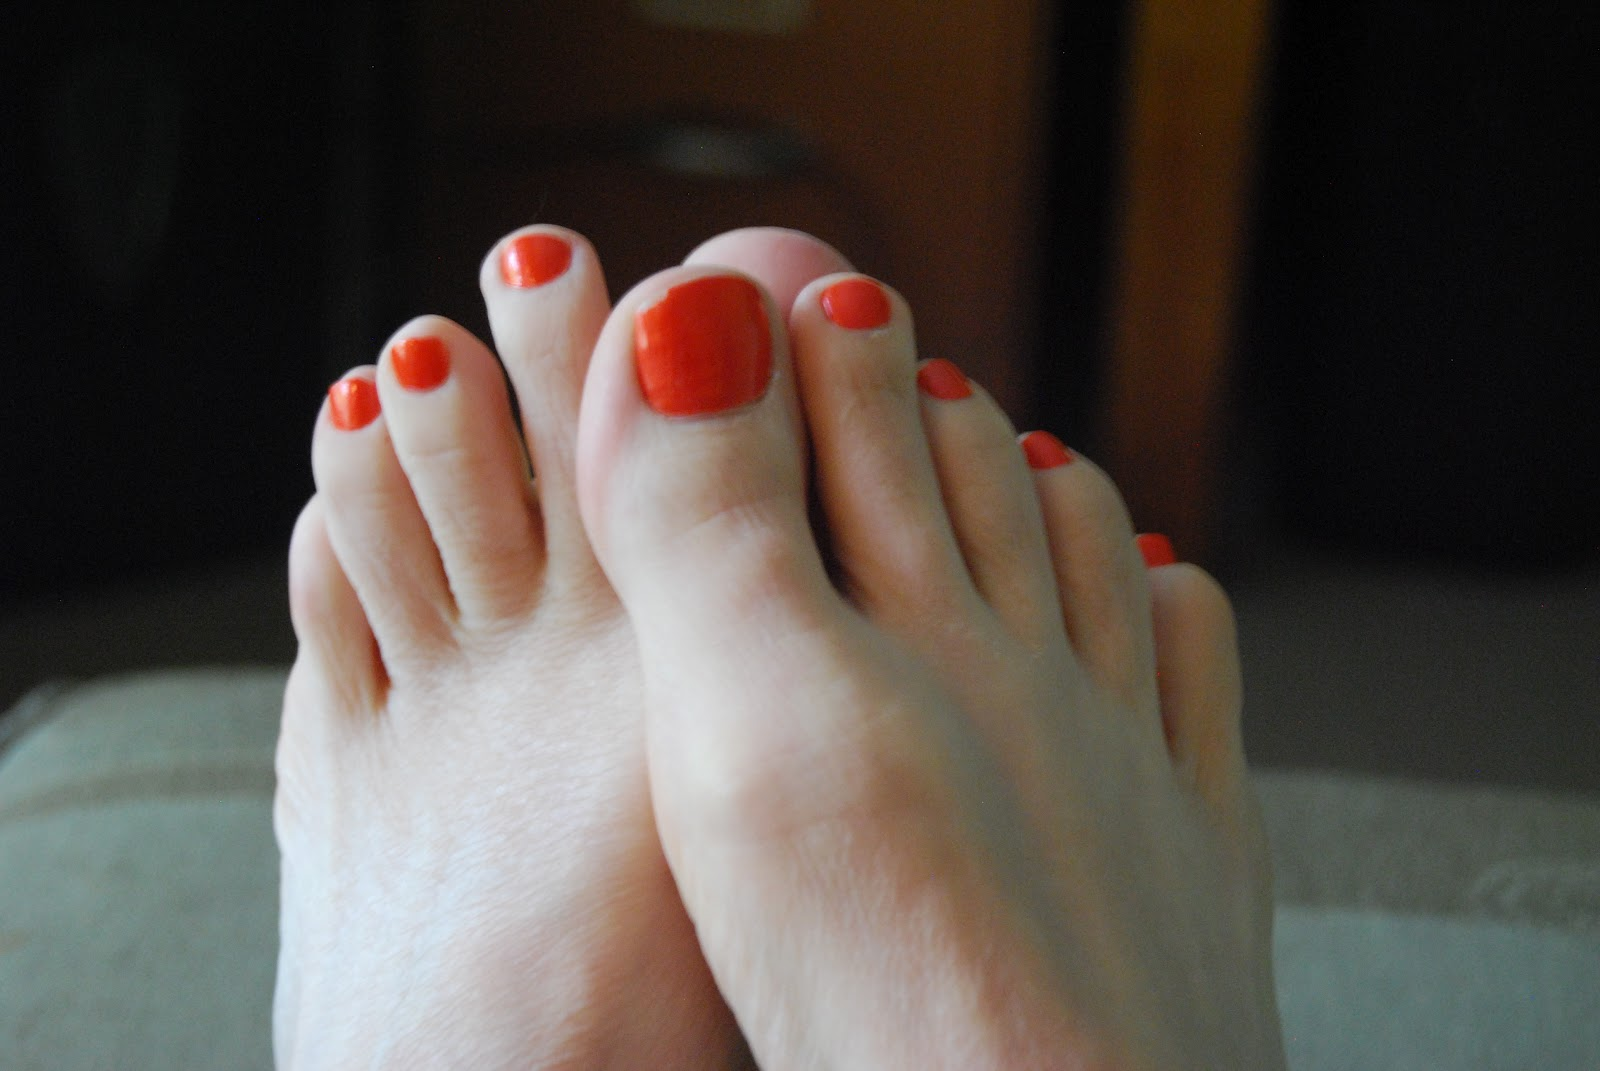 Hairy women with painted feet